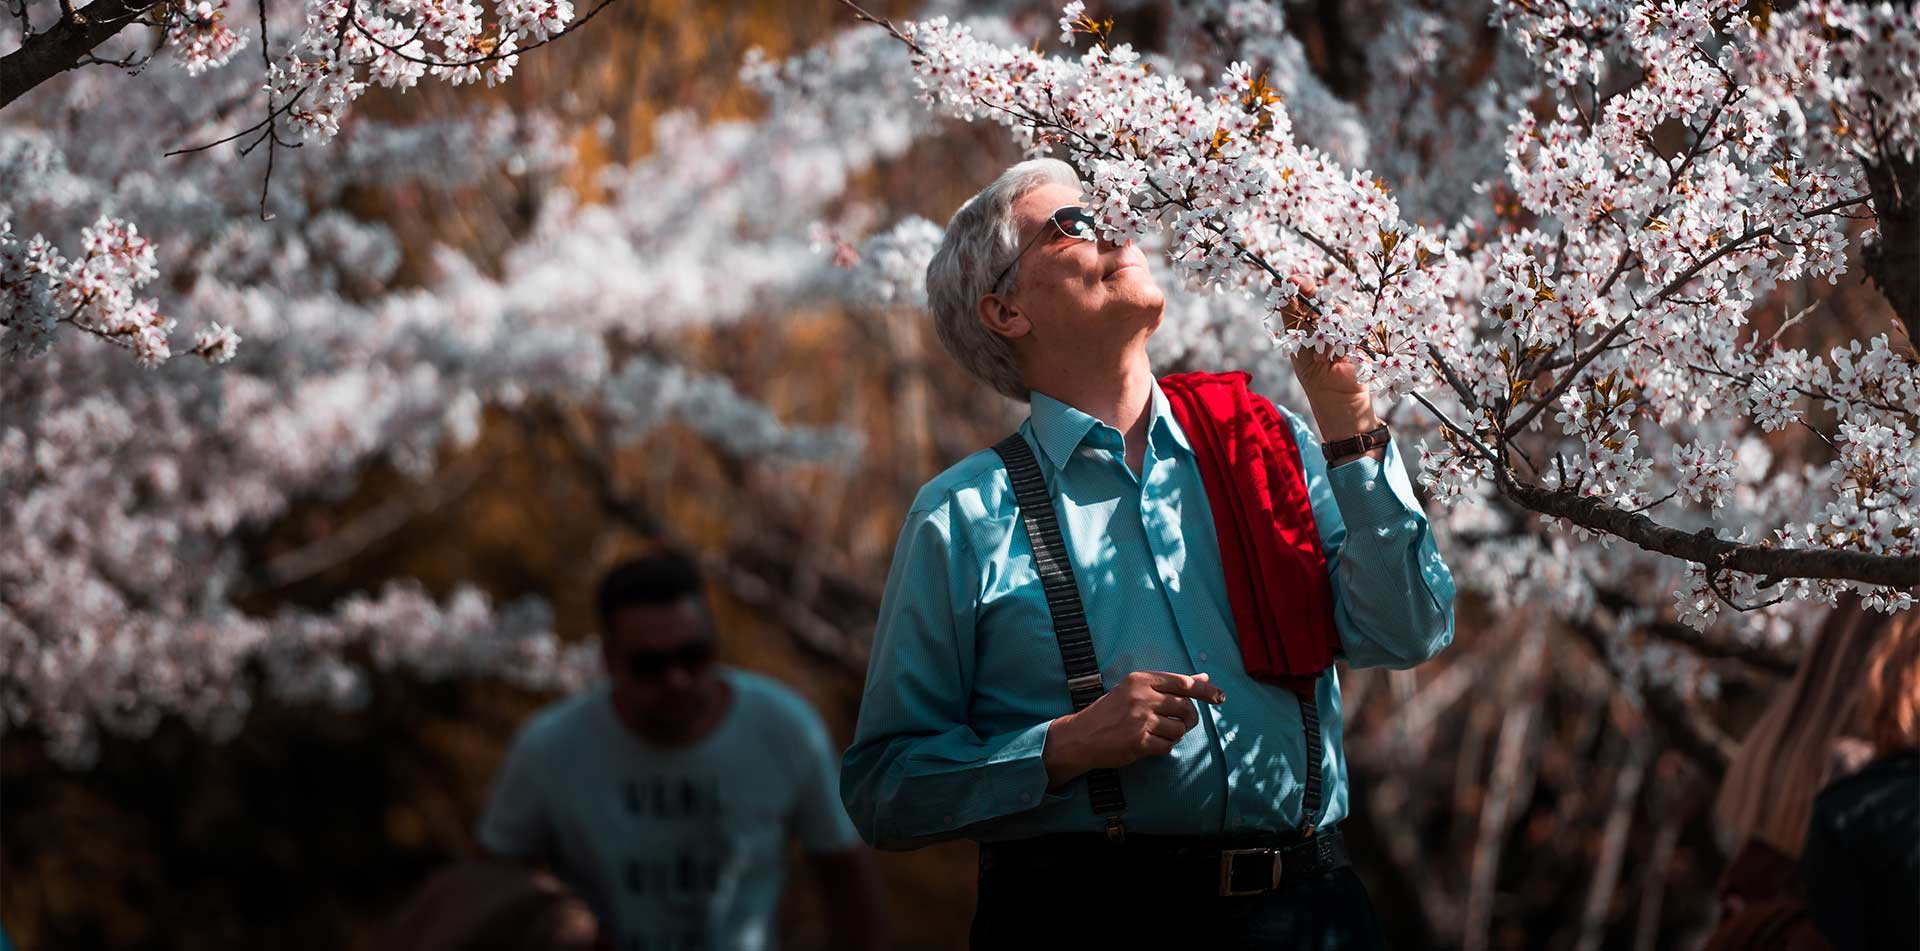 Asia Japan Tokyo traveler enjoying flowers on a tree during Sakura Cherry Blossom festival - luxury vacation destinations